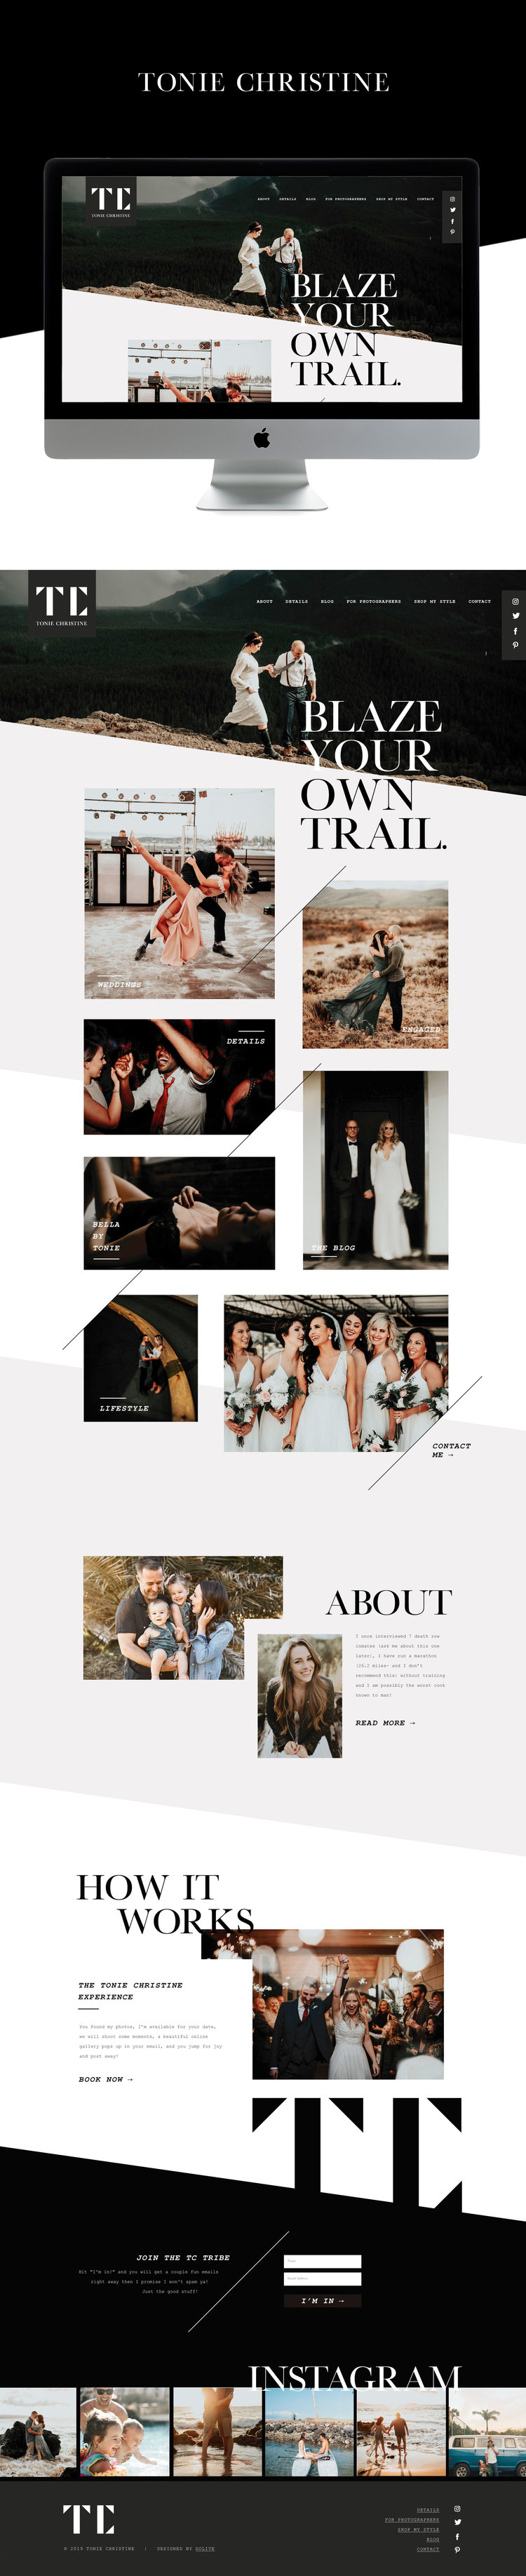 Modern,+Bold,+Edgy+Squarespace+Website+Design+For+Photography+Tonie+Christine+_+By+GoLive.jpg